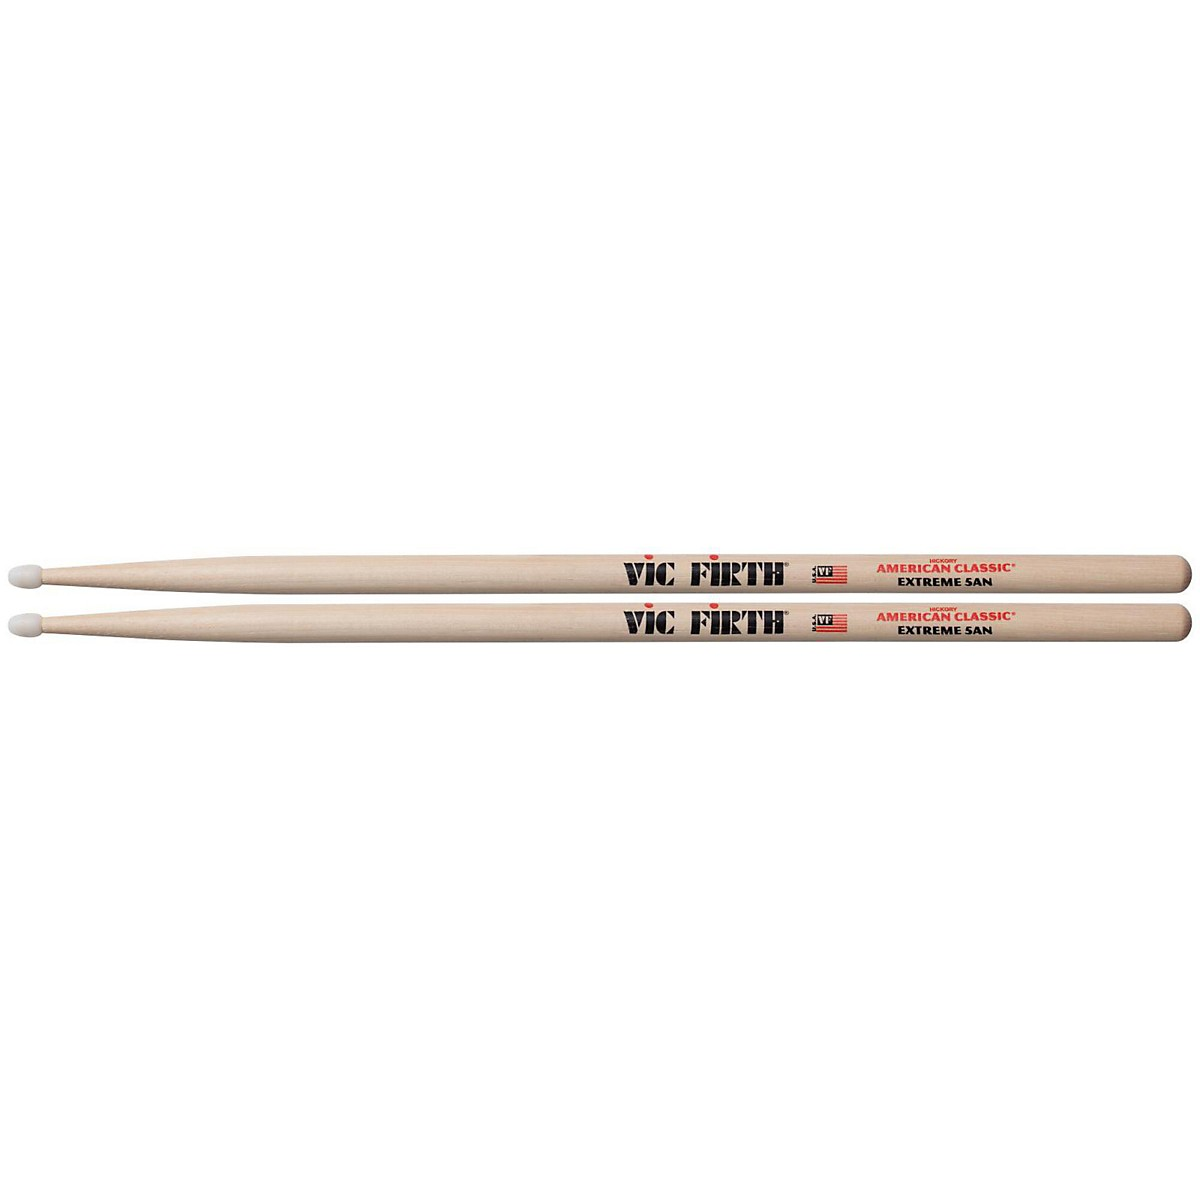 Vic Firth American Classic Extreme Drum Sticks